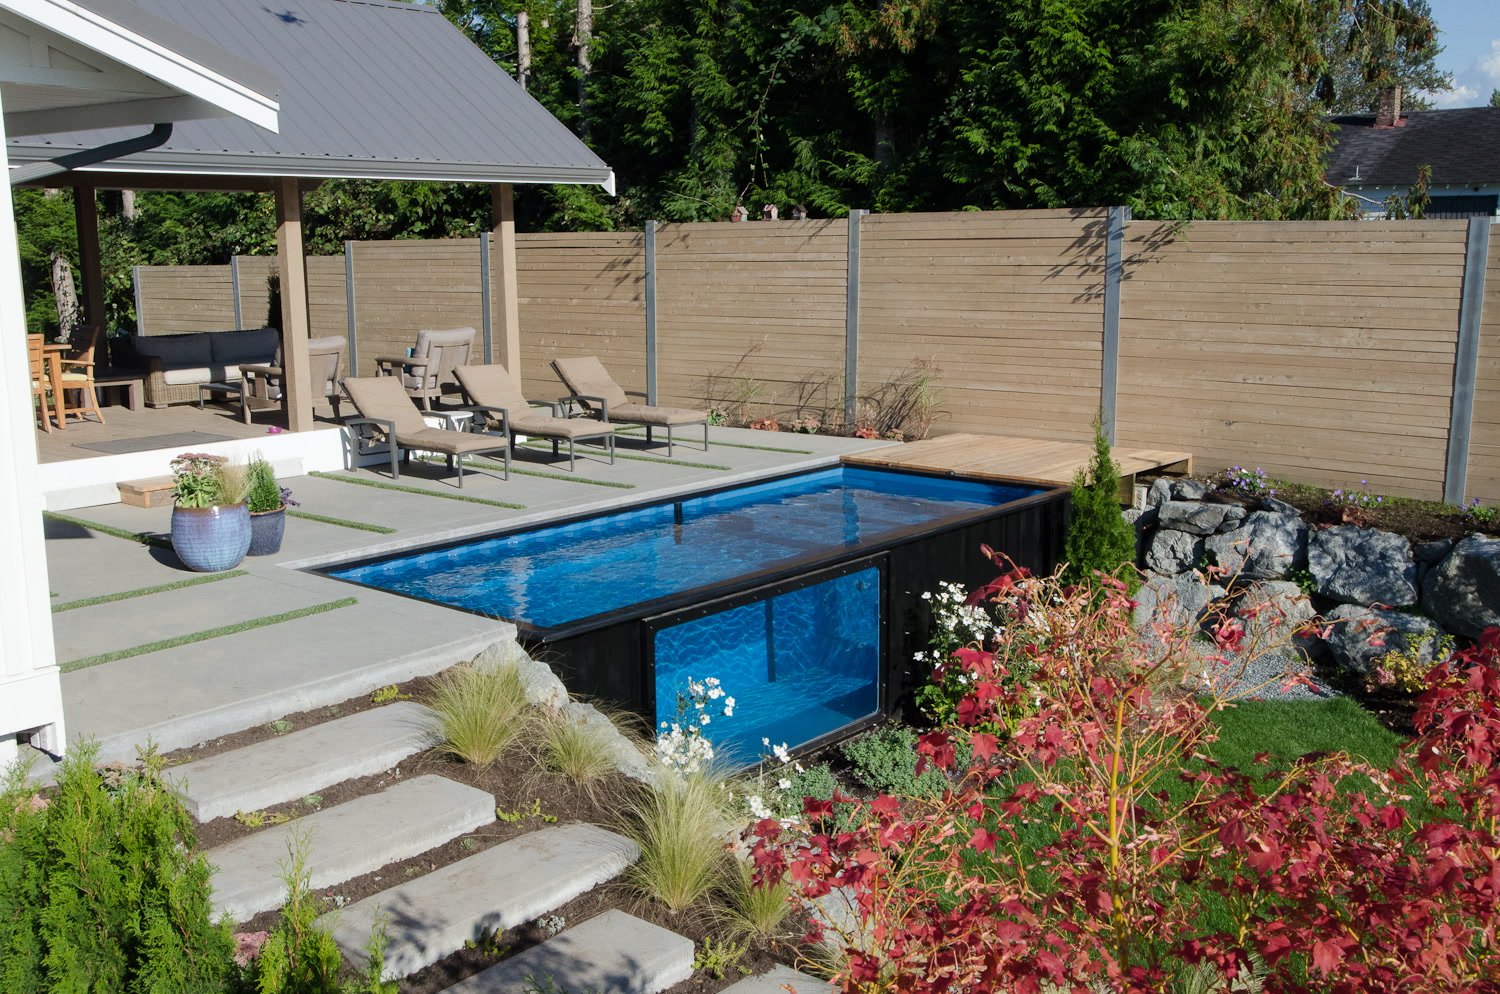 Shipping container pool sets up in minutes